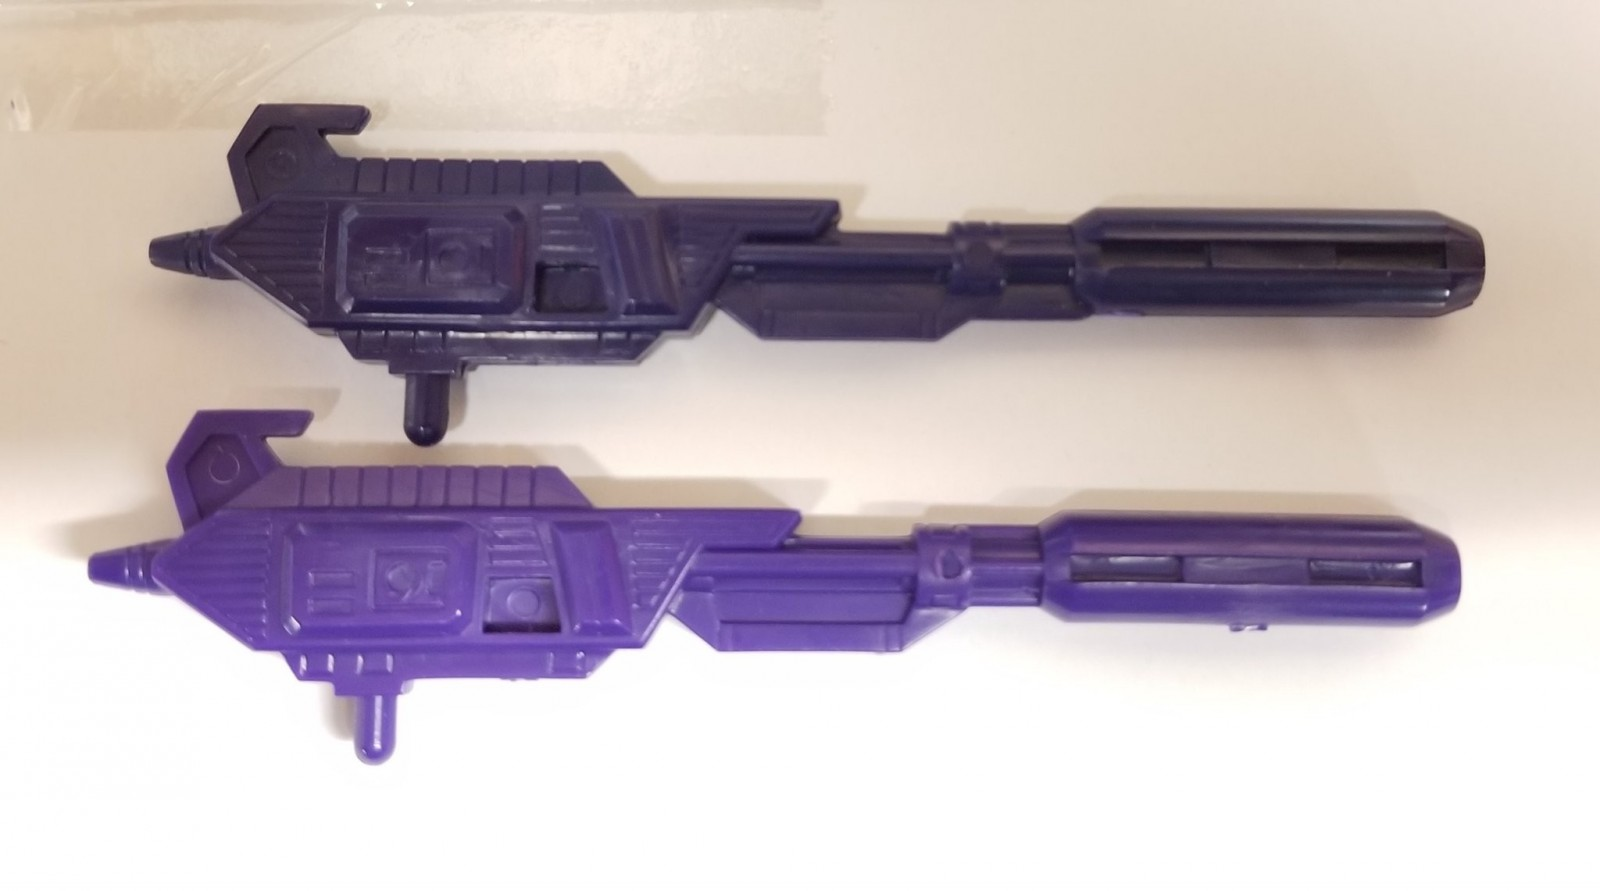 Transformers News: Comparisons Reveal Astrotrain Reissue Has Different Colours than G1 Toy + New Stock Images